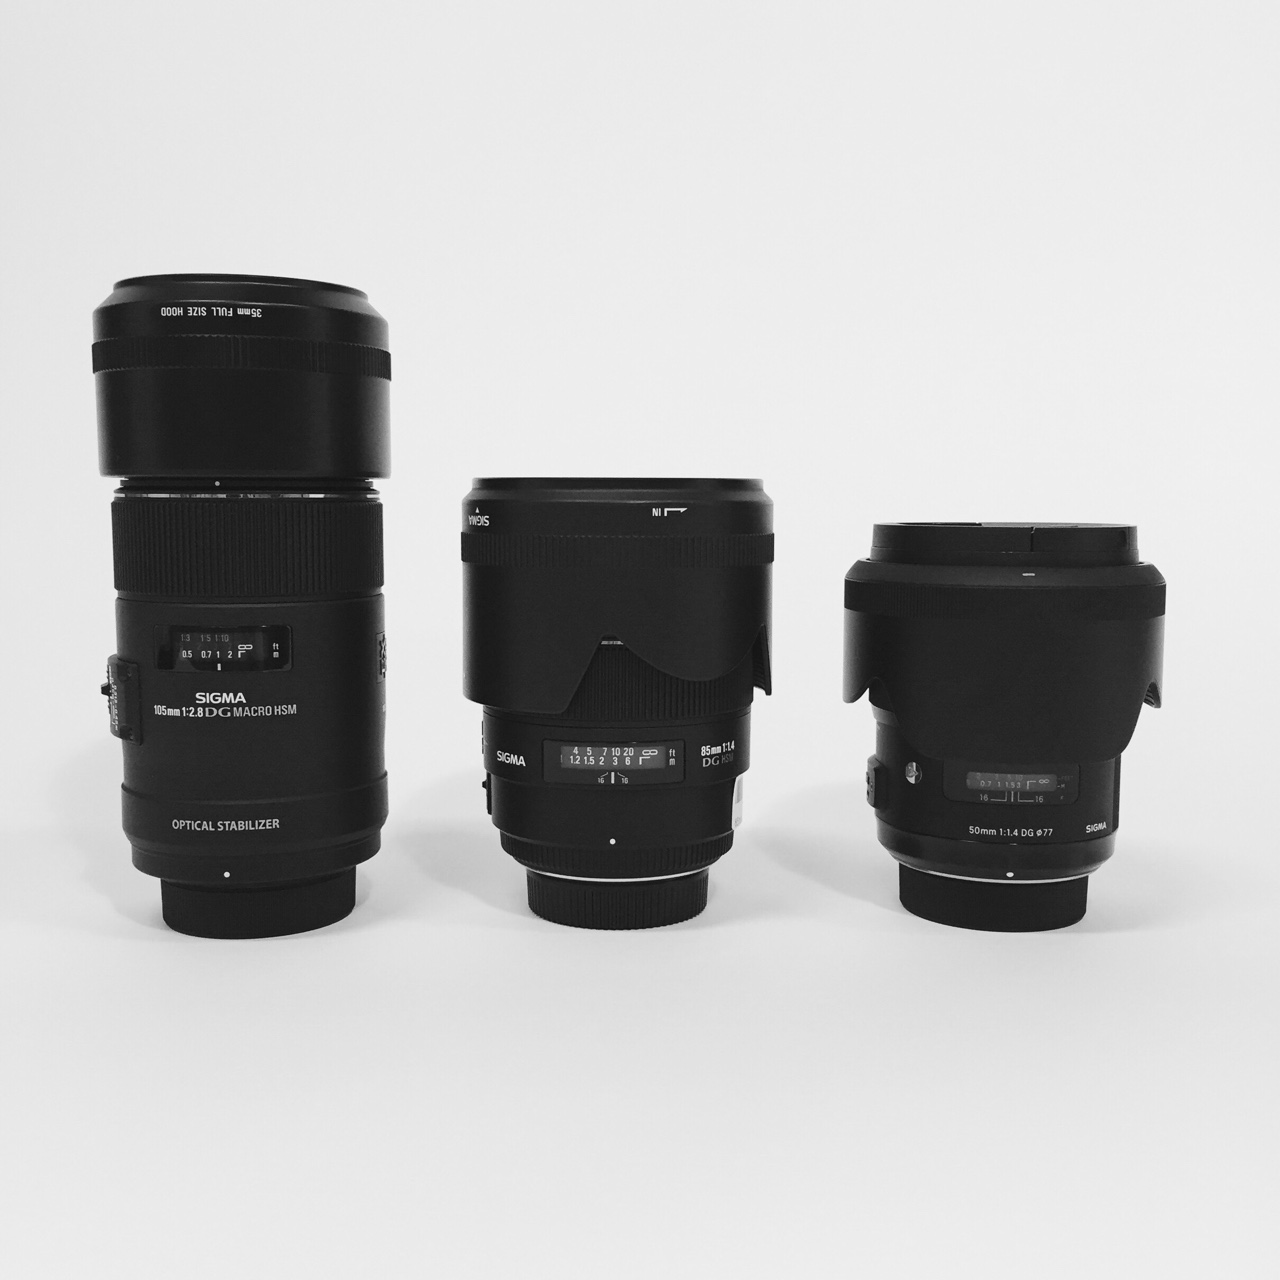 Made some new friends today. Sigma 105 macro, 85, and 50. (Don't tell the others, but the 85 is my favorite)